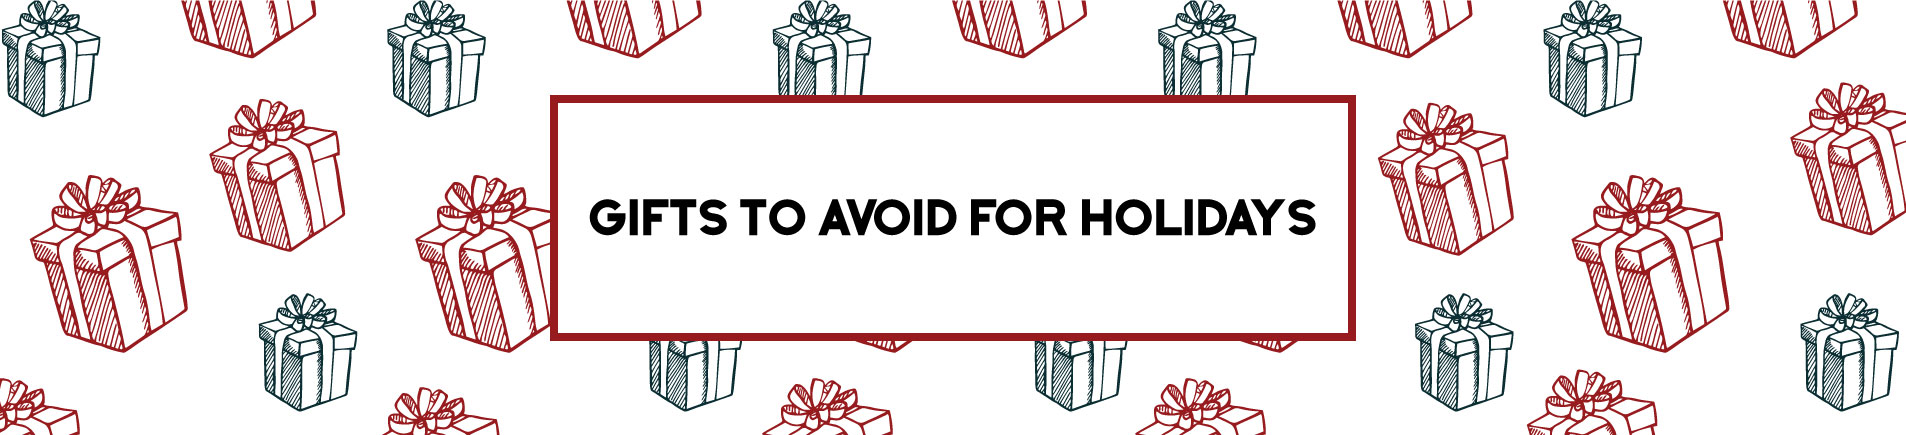 HGifts to Avoid for Holidays